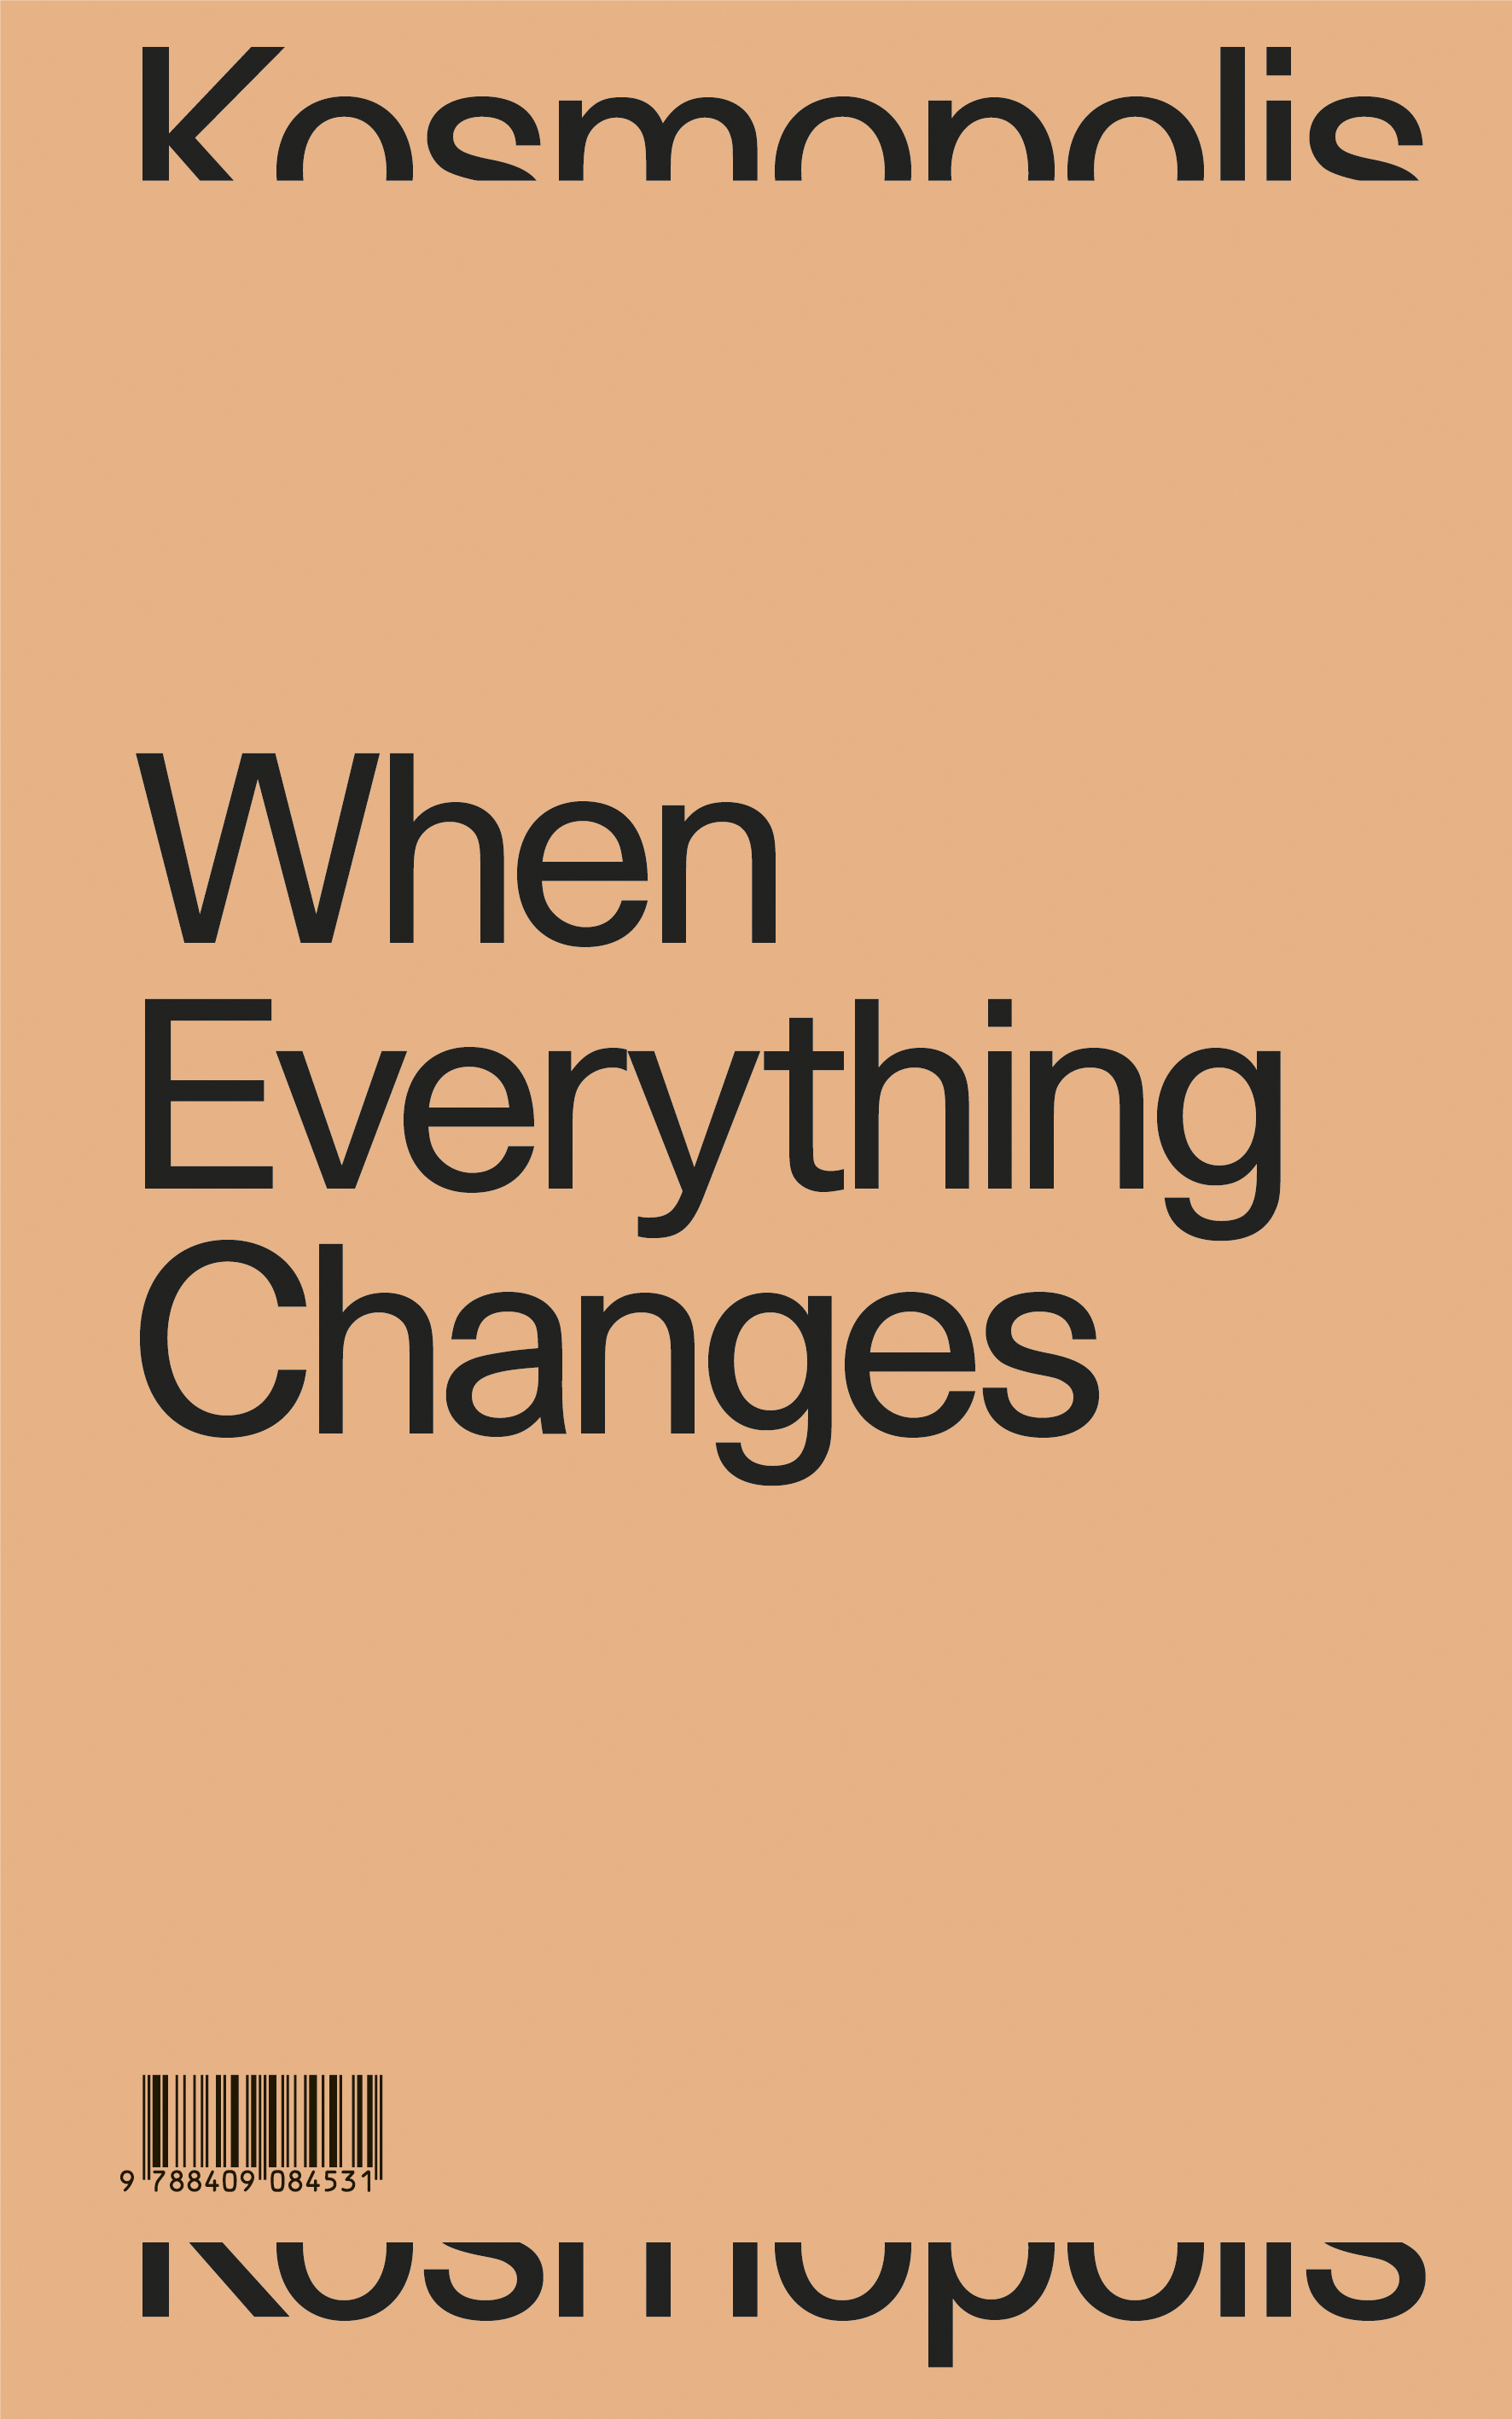 When everything changes / Quan tot canvia